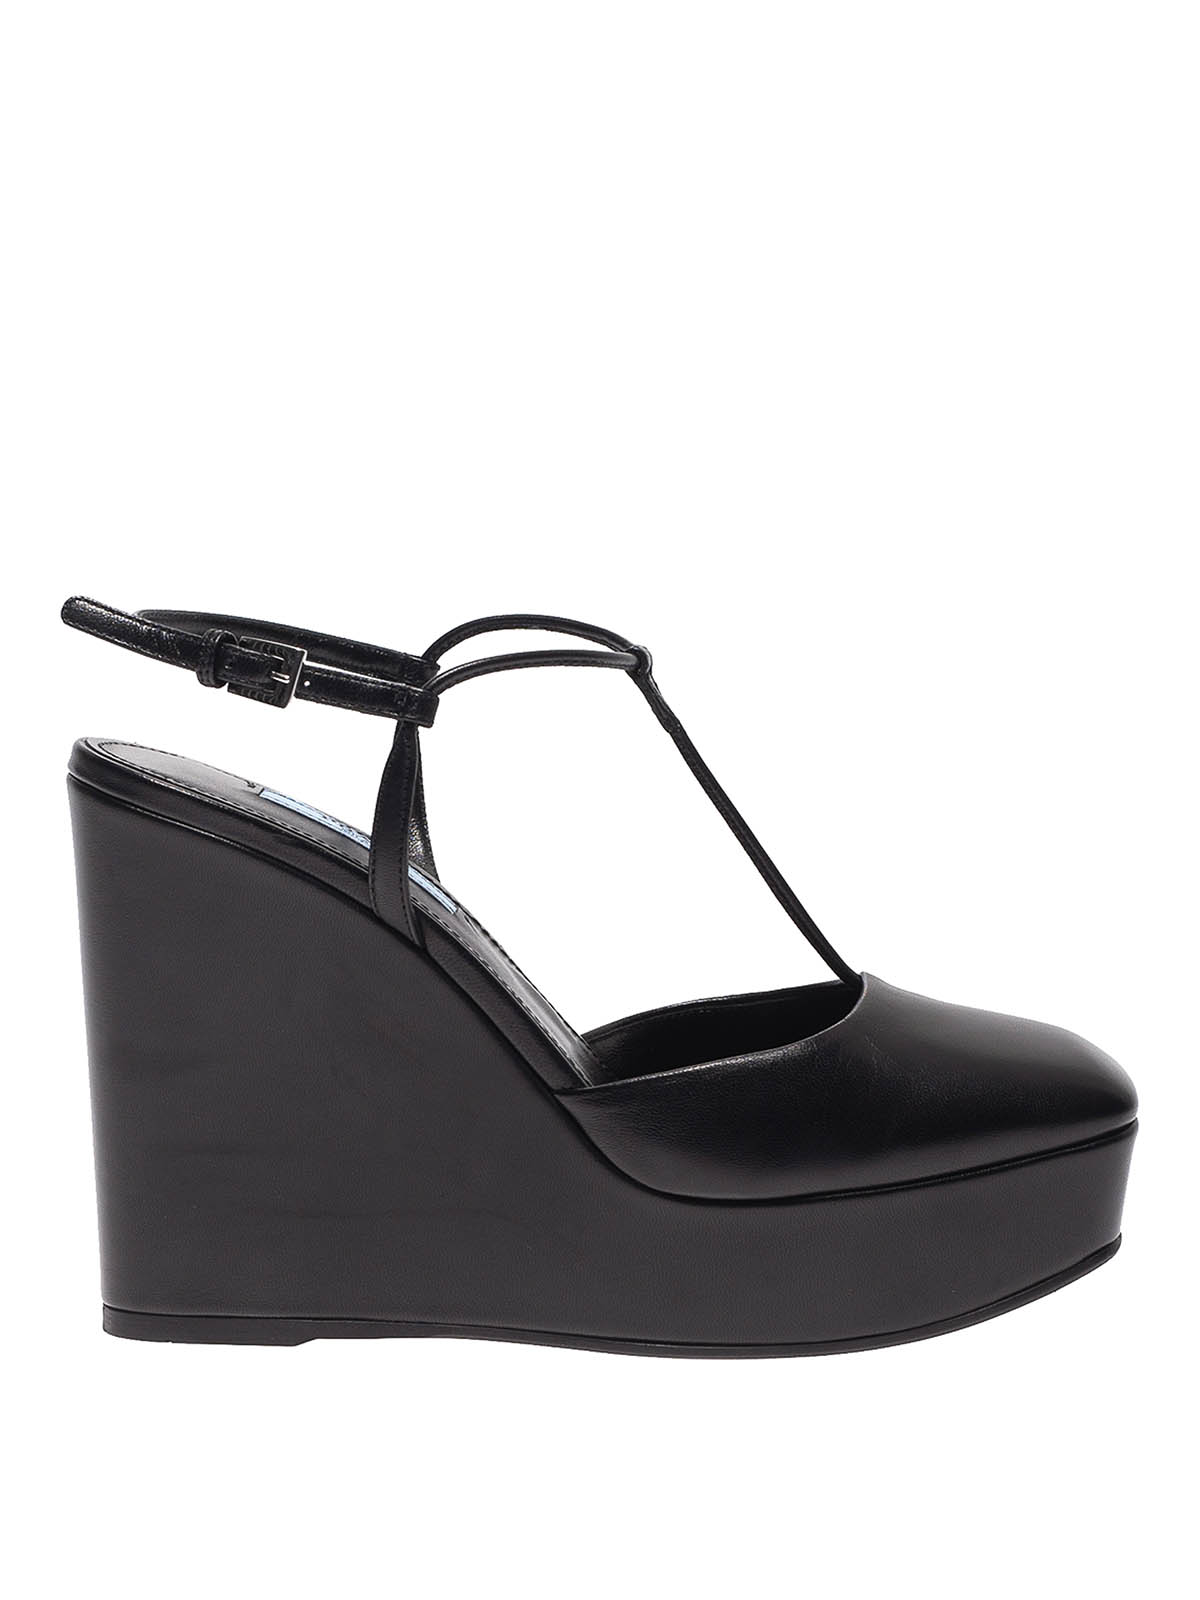 Prada T-strap Wedges In Black Leather